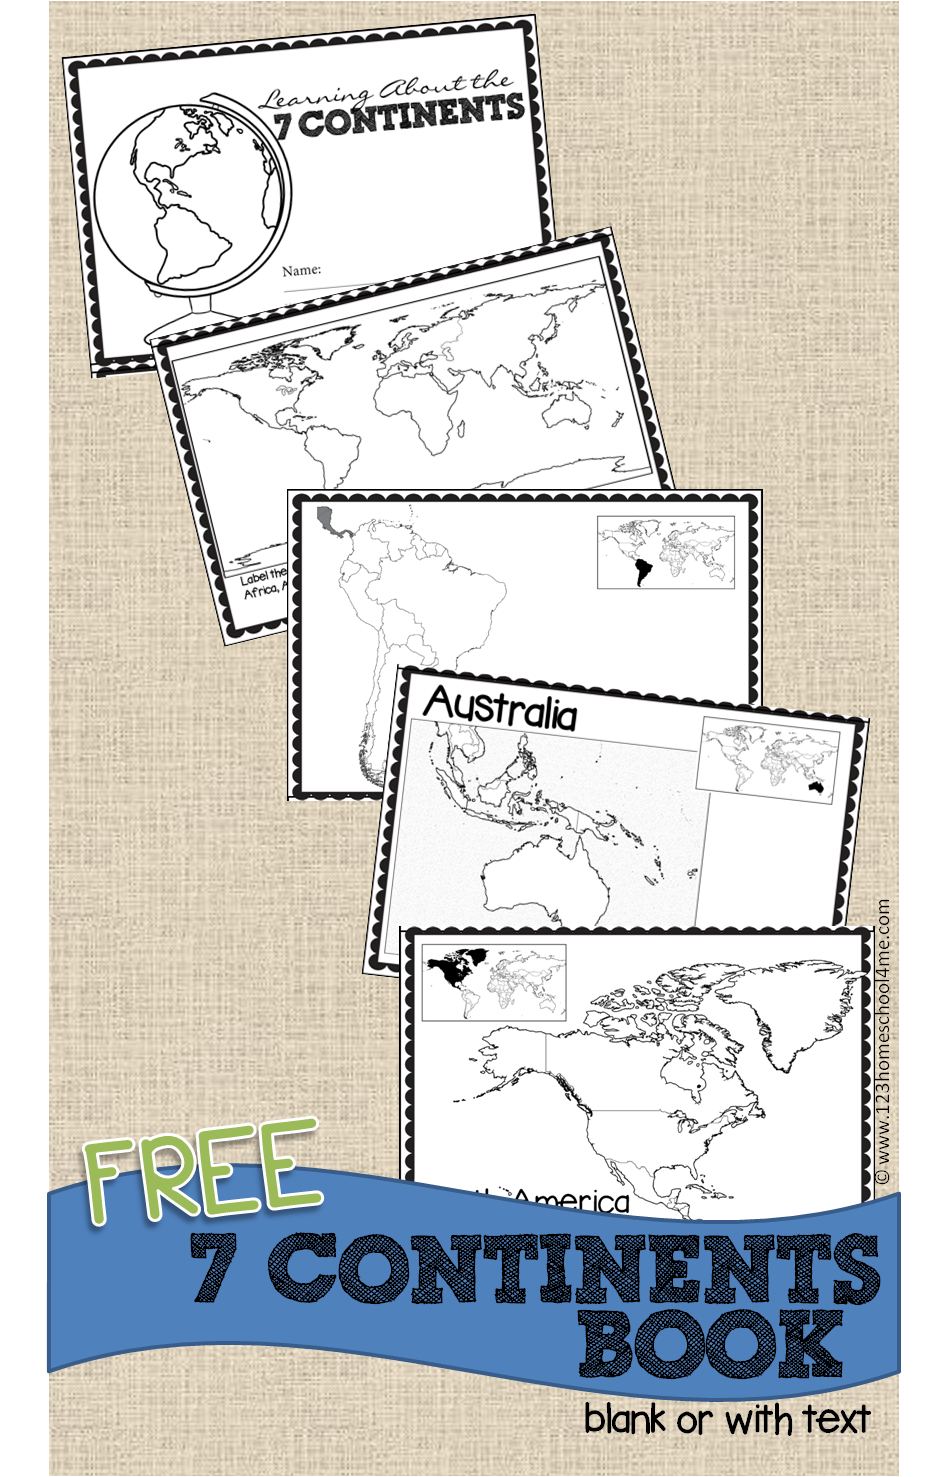 free printable continents book for kids perfect for geography for homeschool kindergarten 1st grade - Printable Books For Kids